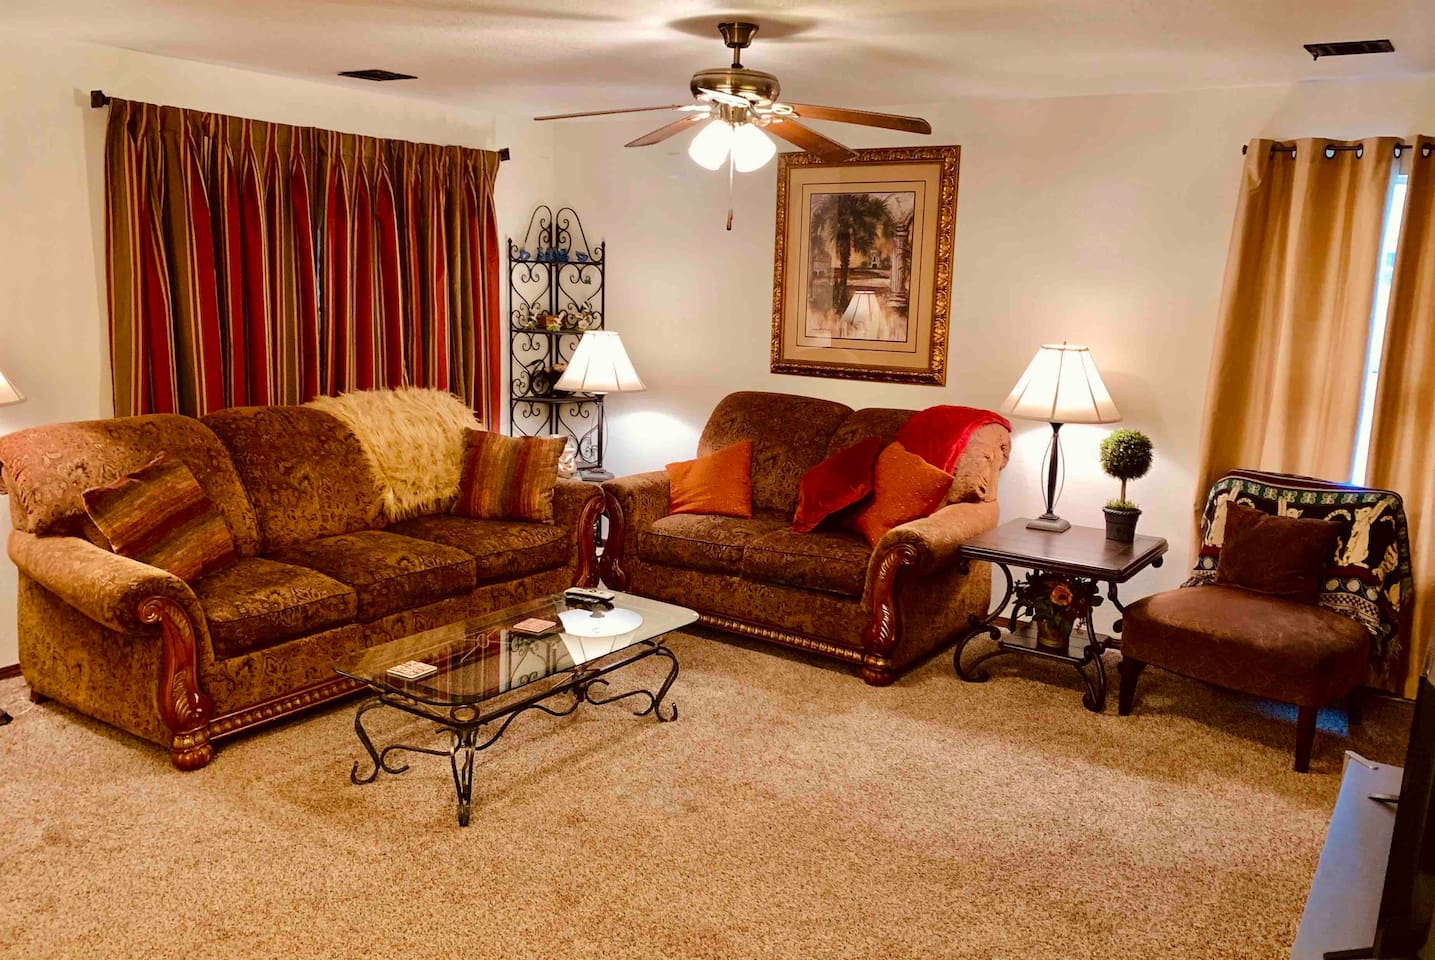 Beautifully furnished and comfortable very large living room.